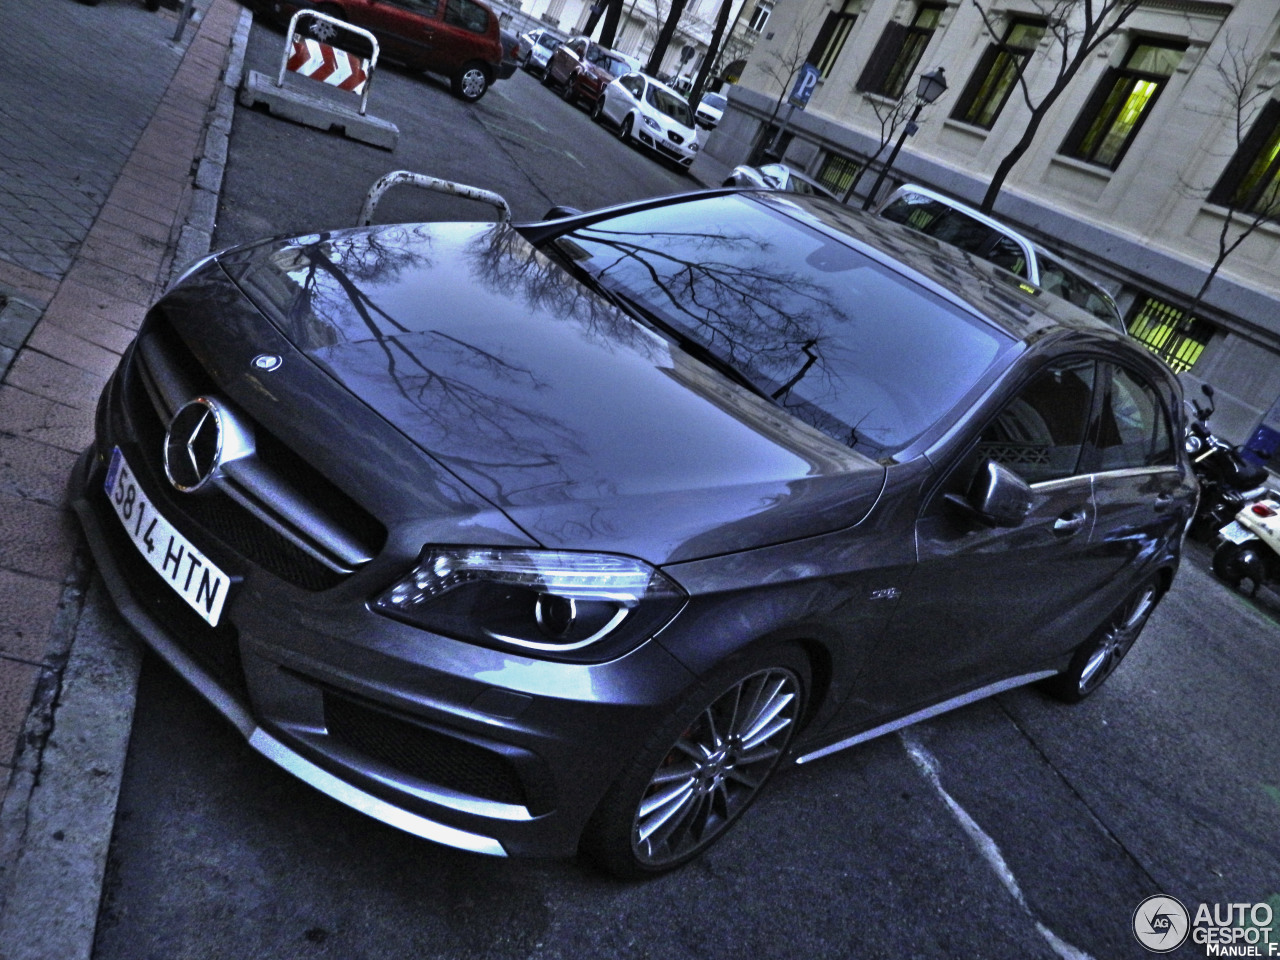 Mercedes benz a 45 amg 24 januar 2014 autogespot for Mercedes benz a 45